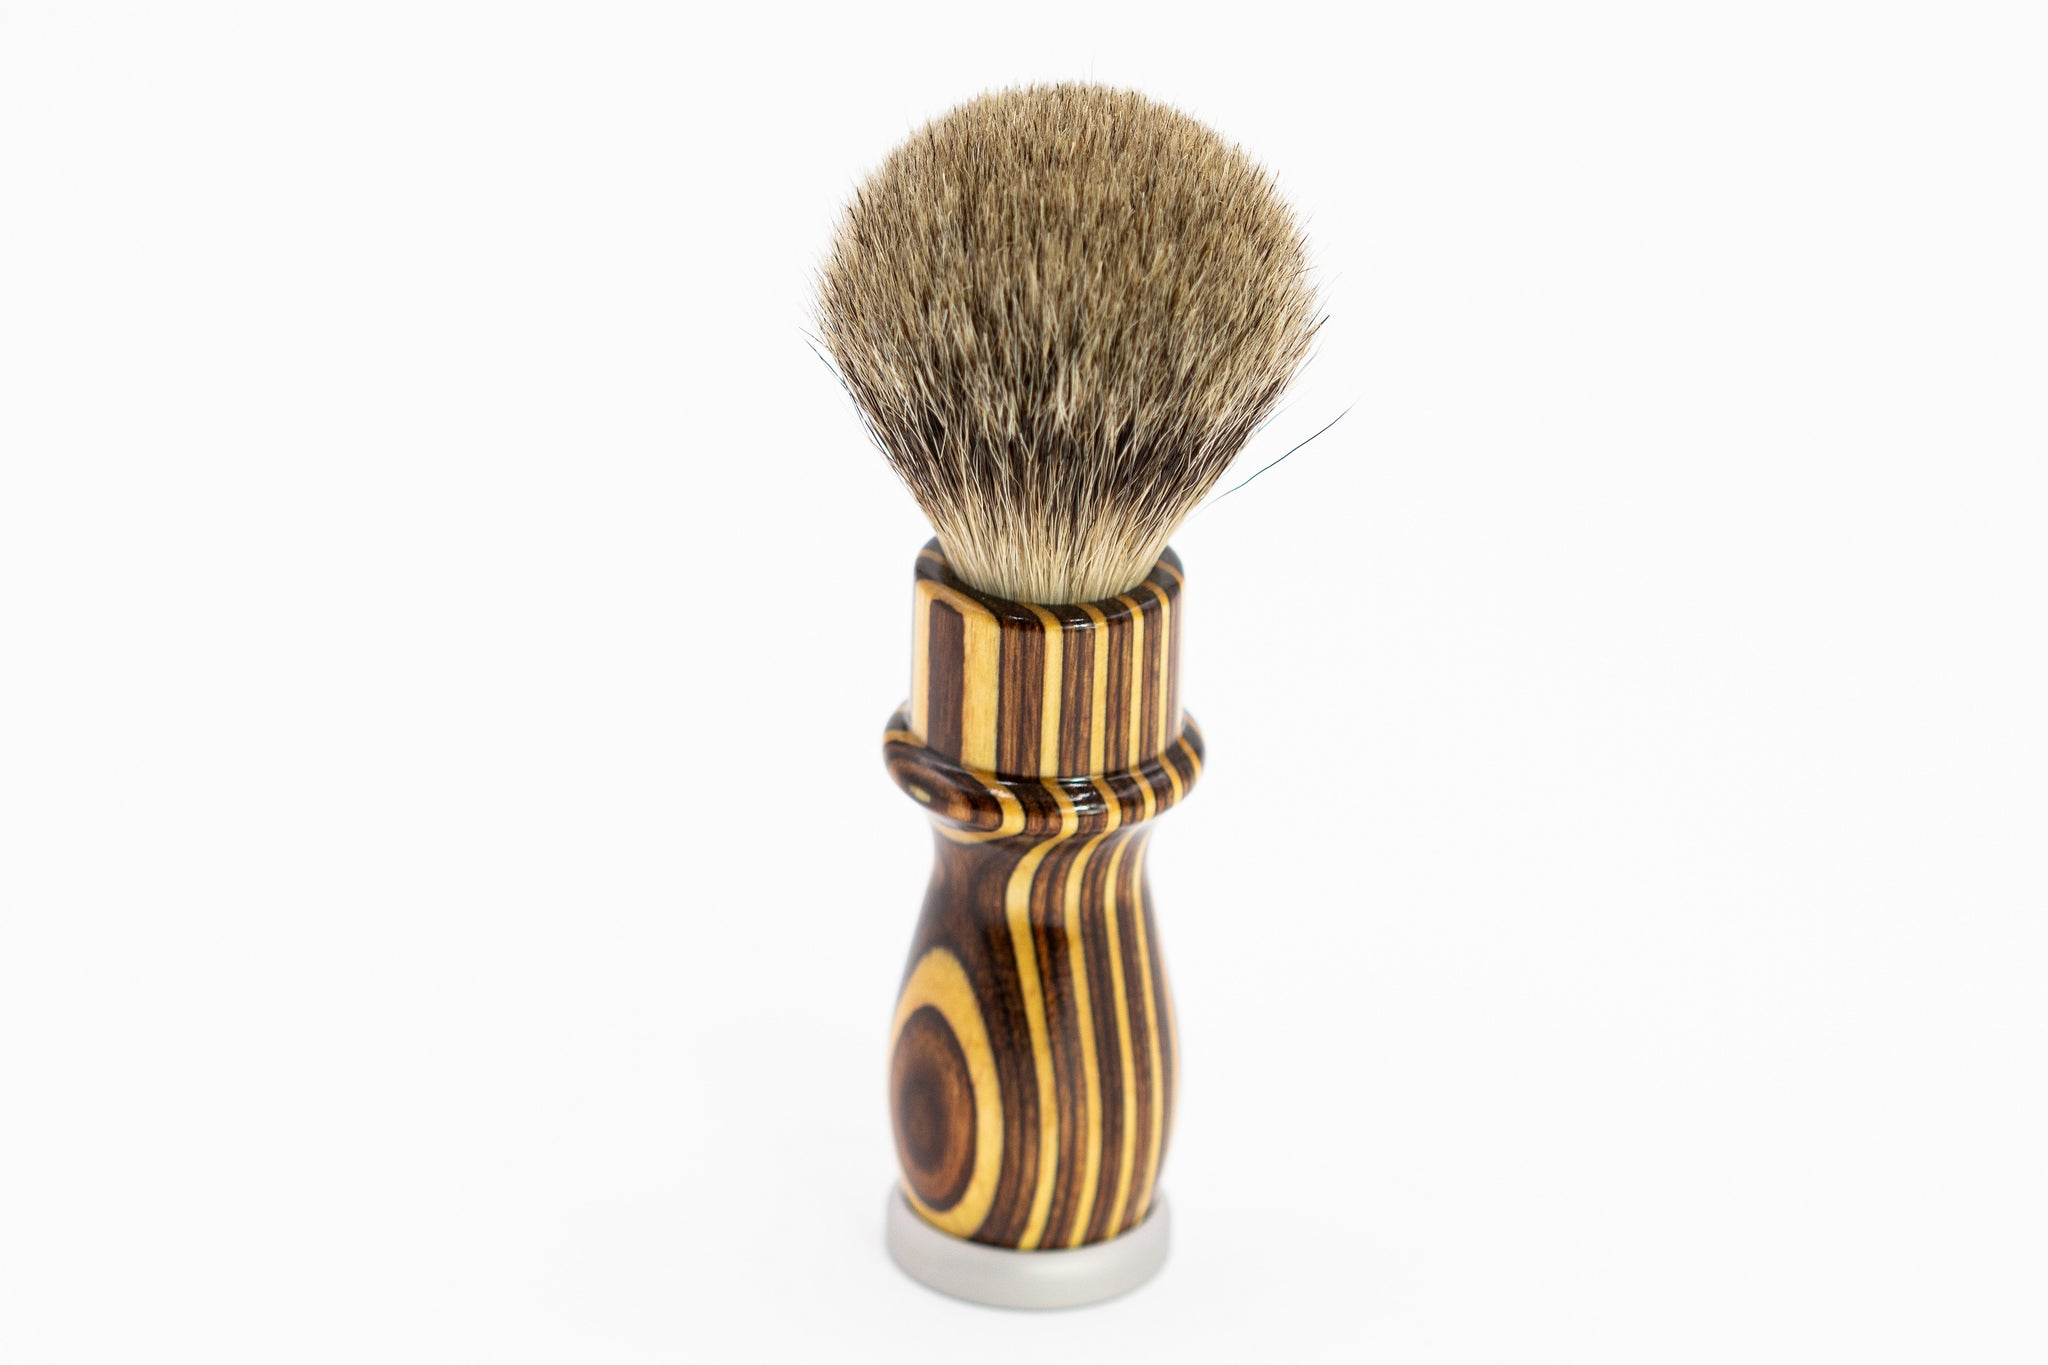 Tigerwood Shaving Brush